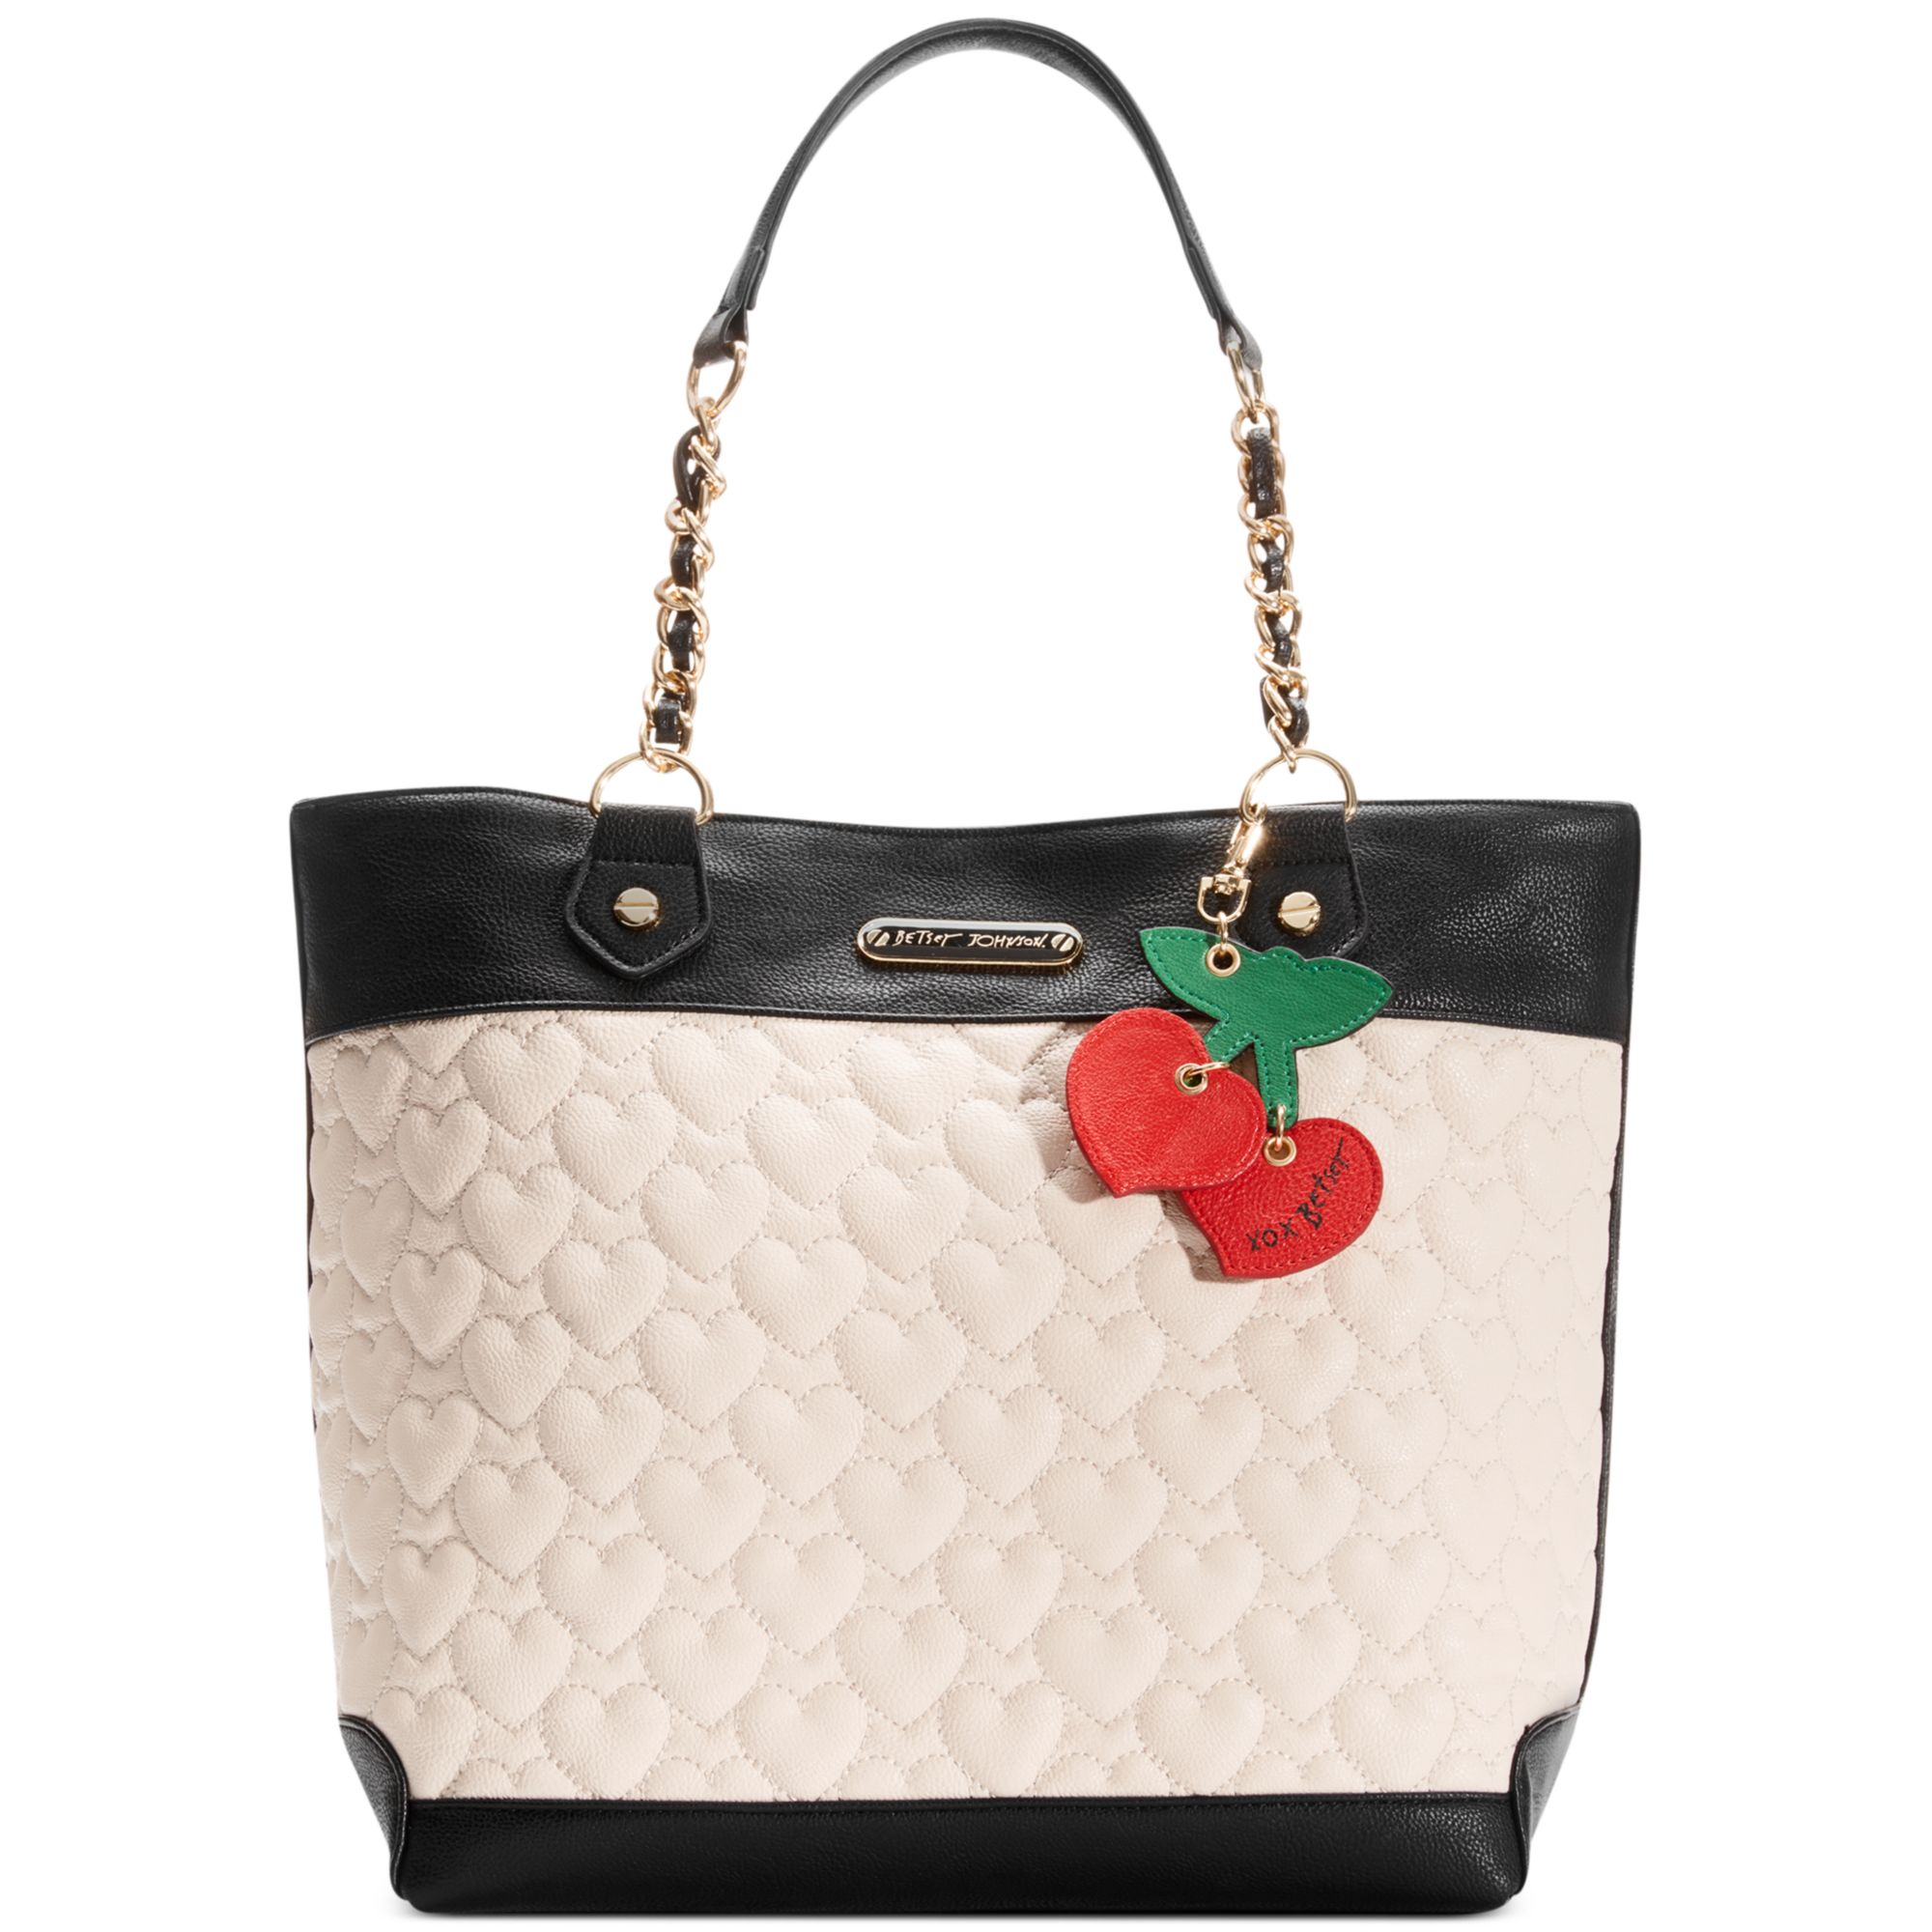 Betsey Johnson Macys Exclusive Tote In Black Lyst